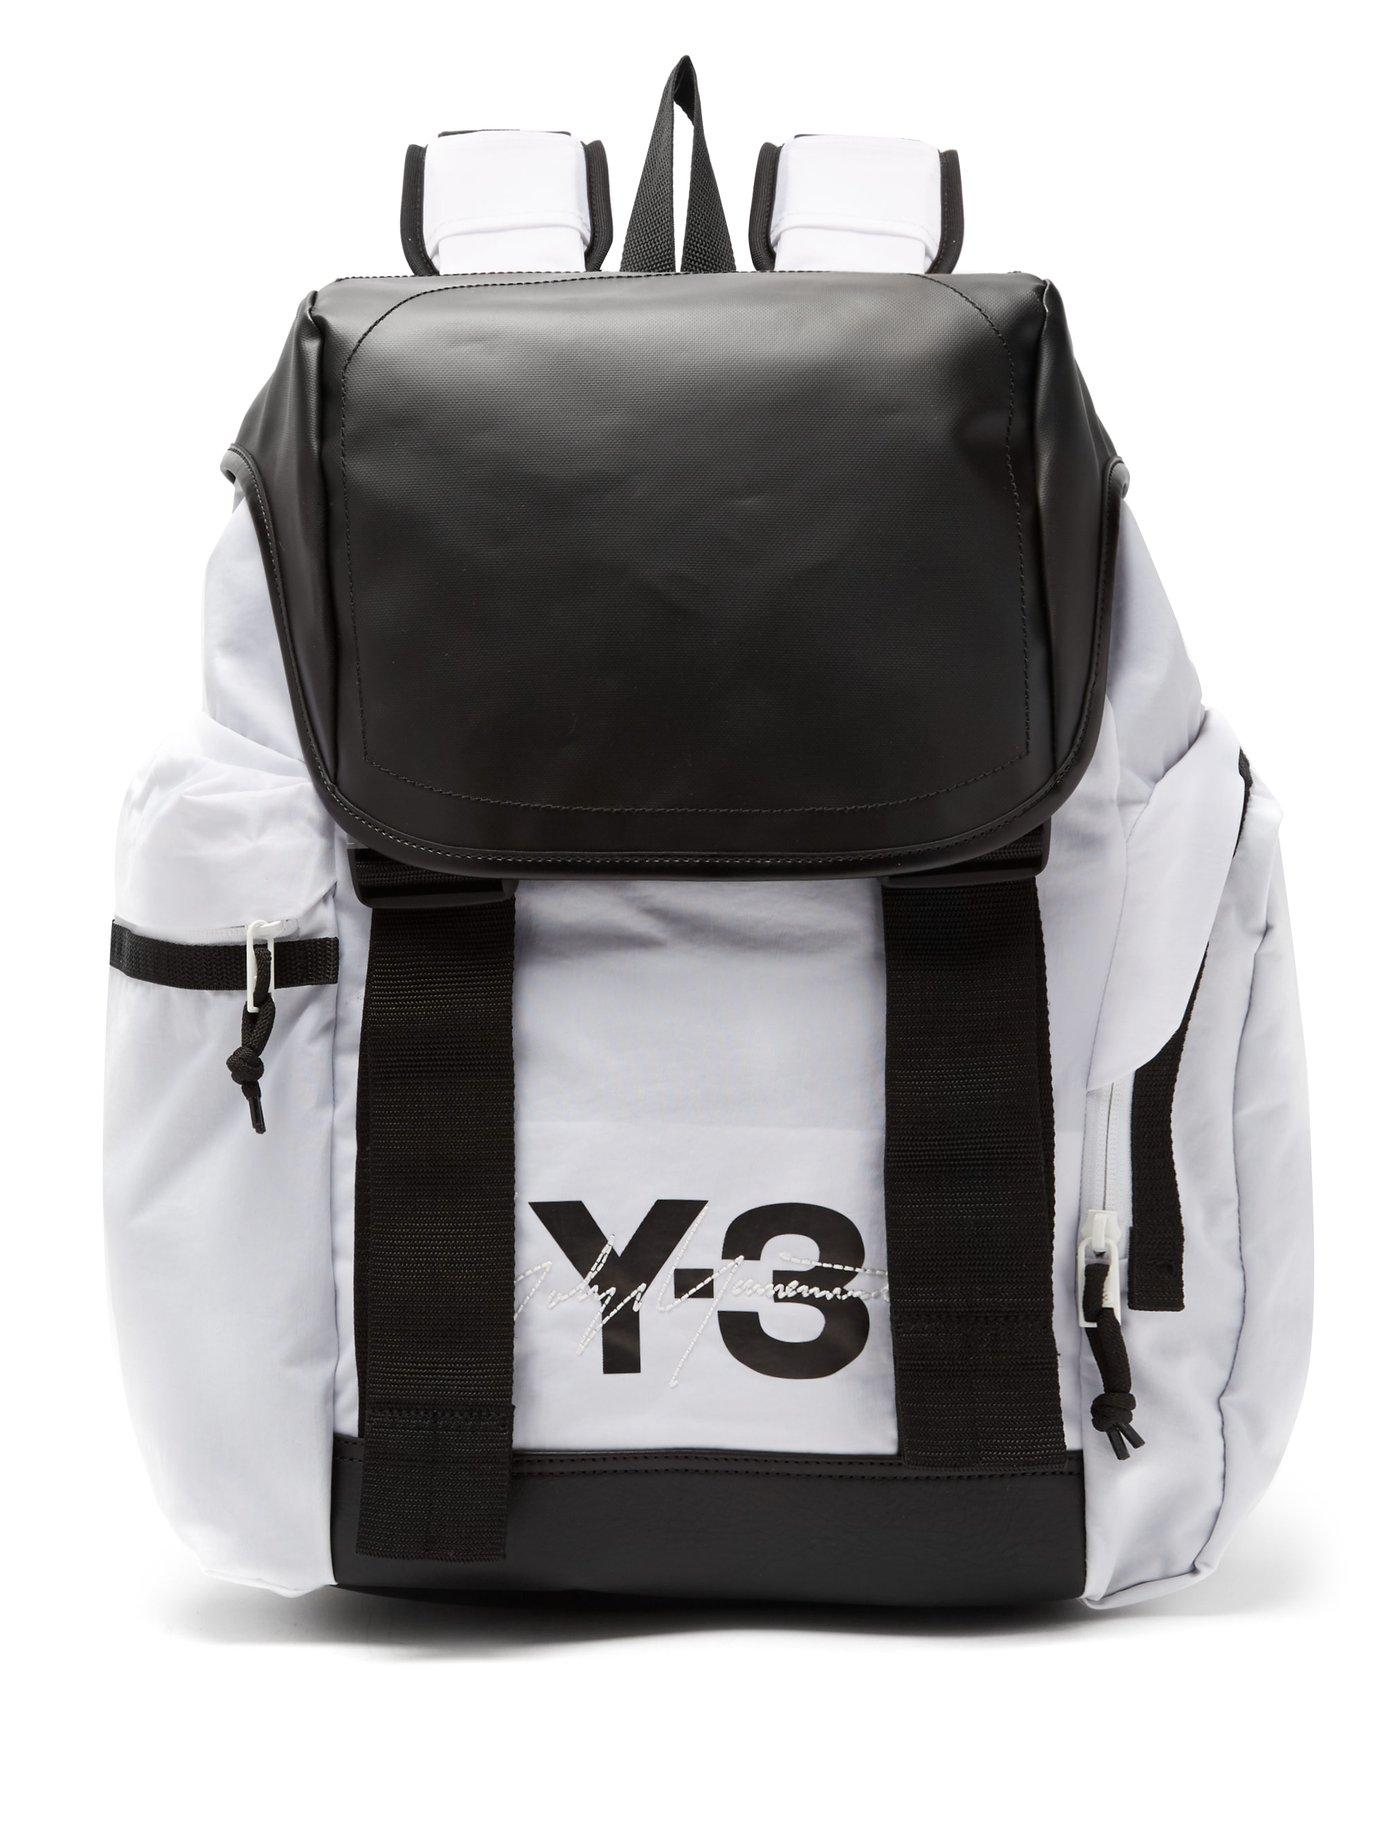 018acce3c944 Y-3 Mobility Backpack In White